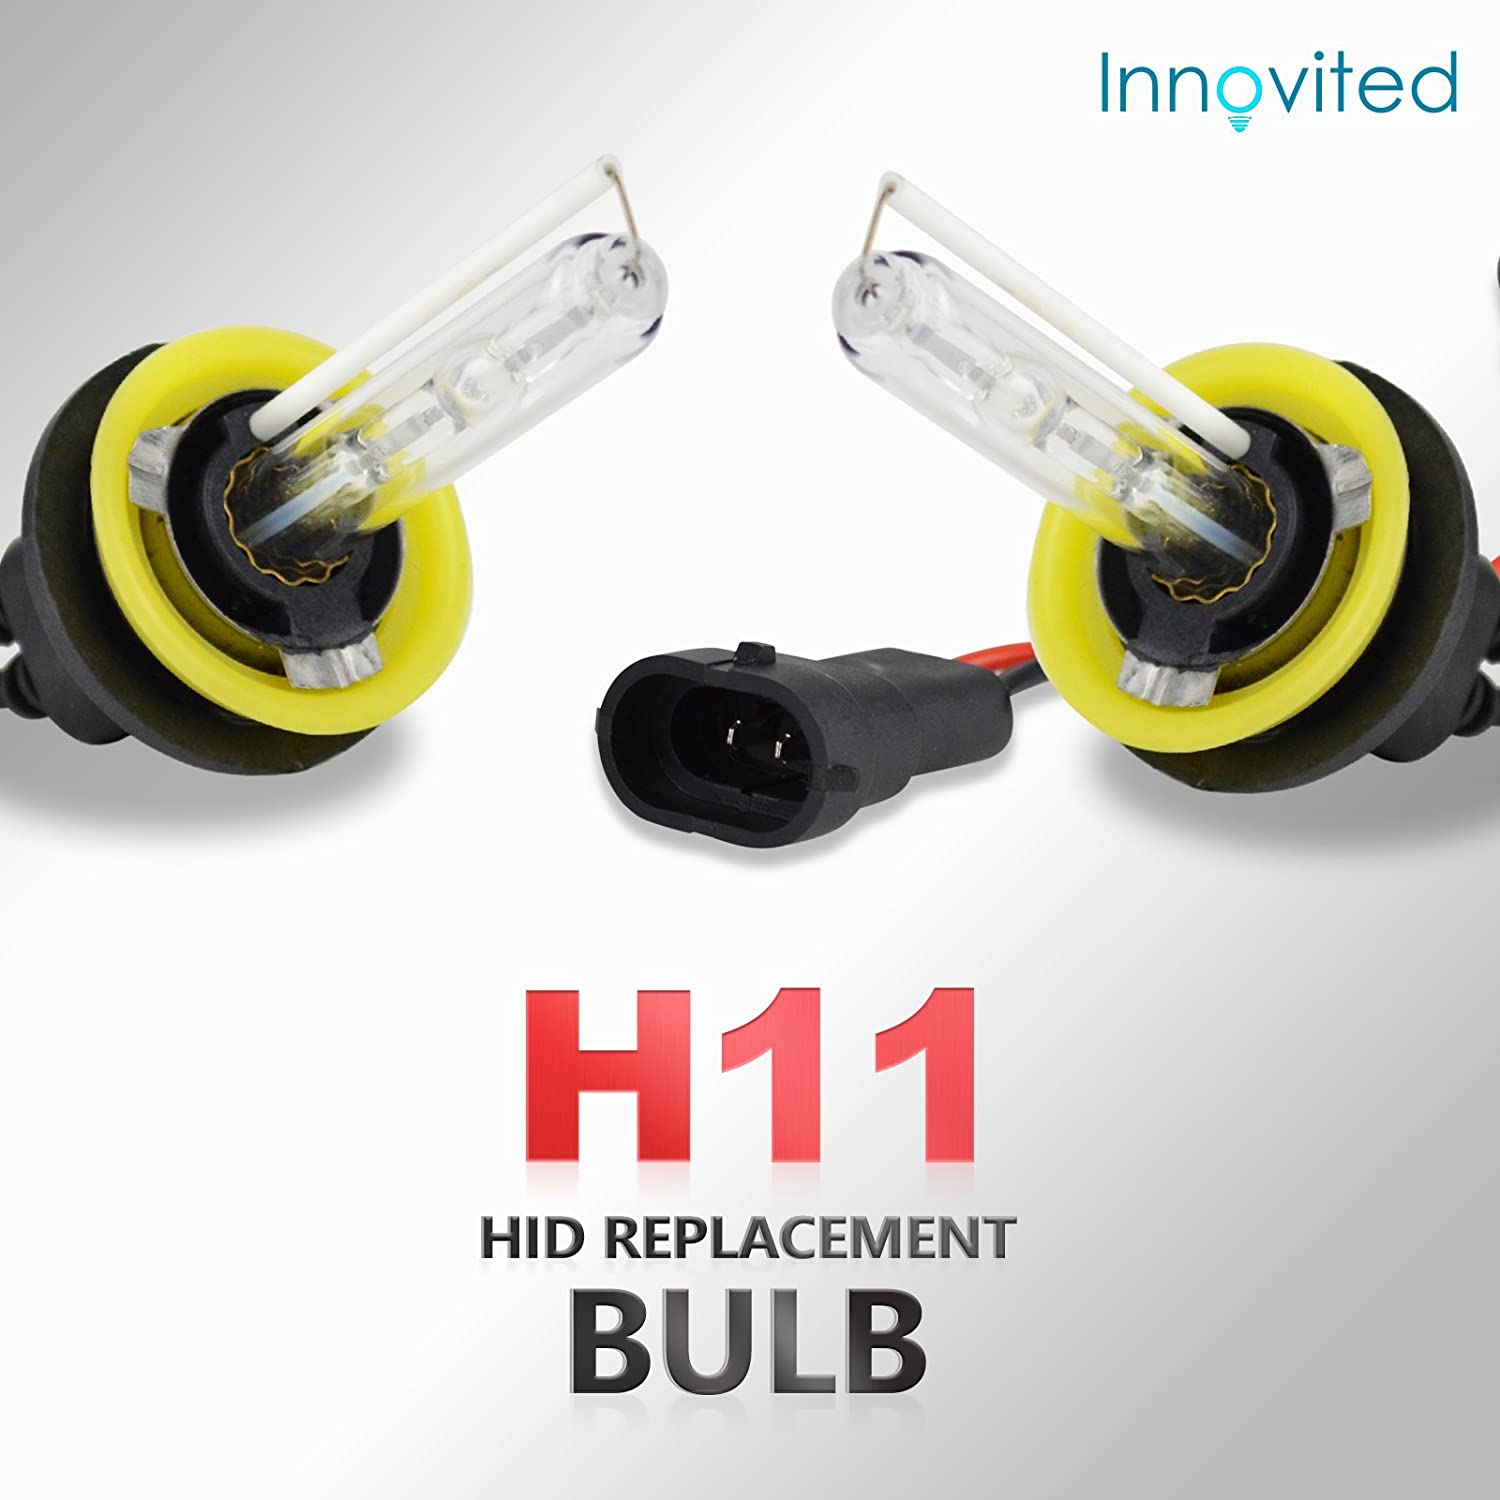 2 Year Warranty Innovited HID Xenon 9005 HB3 6000K Replacement Bulbs 1 Pair Diamond White